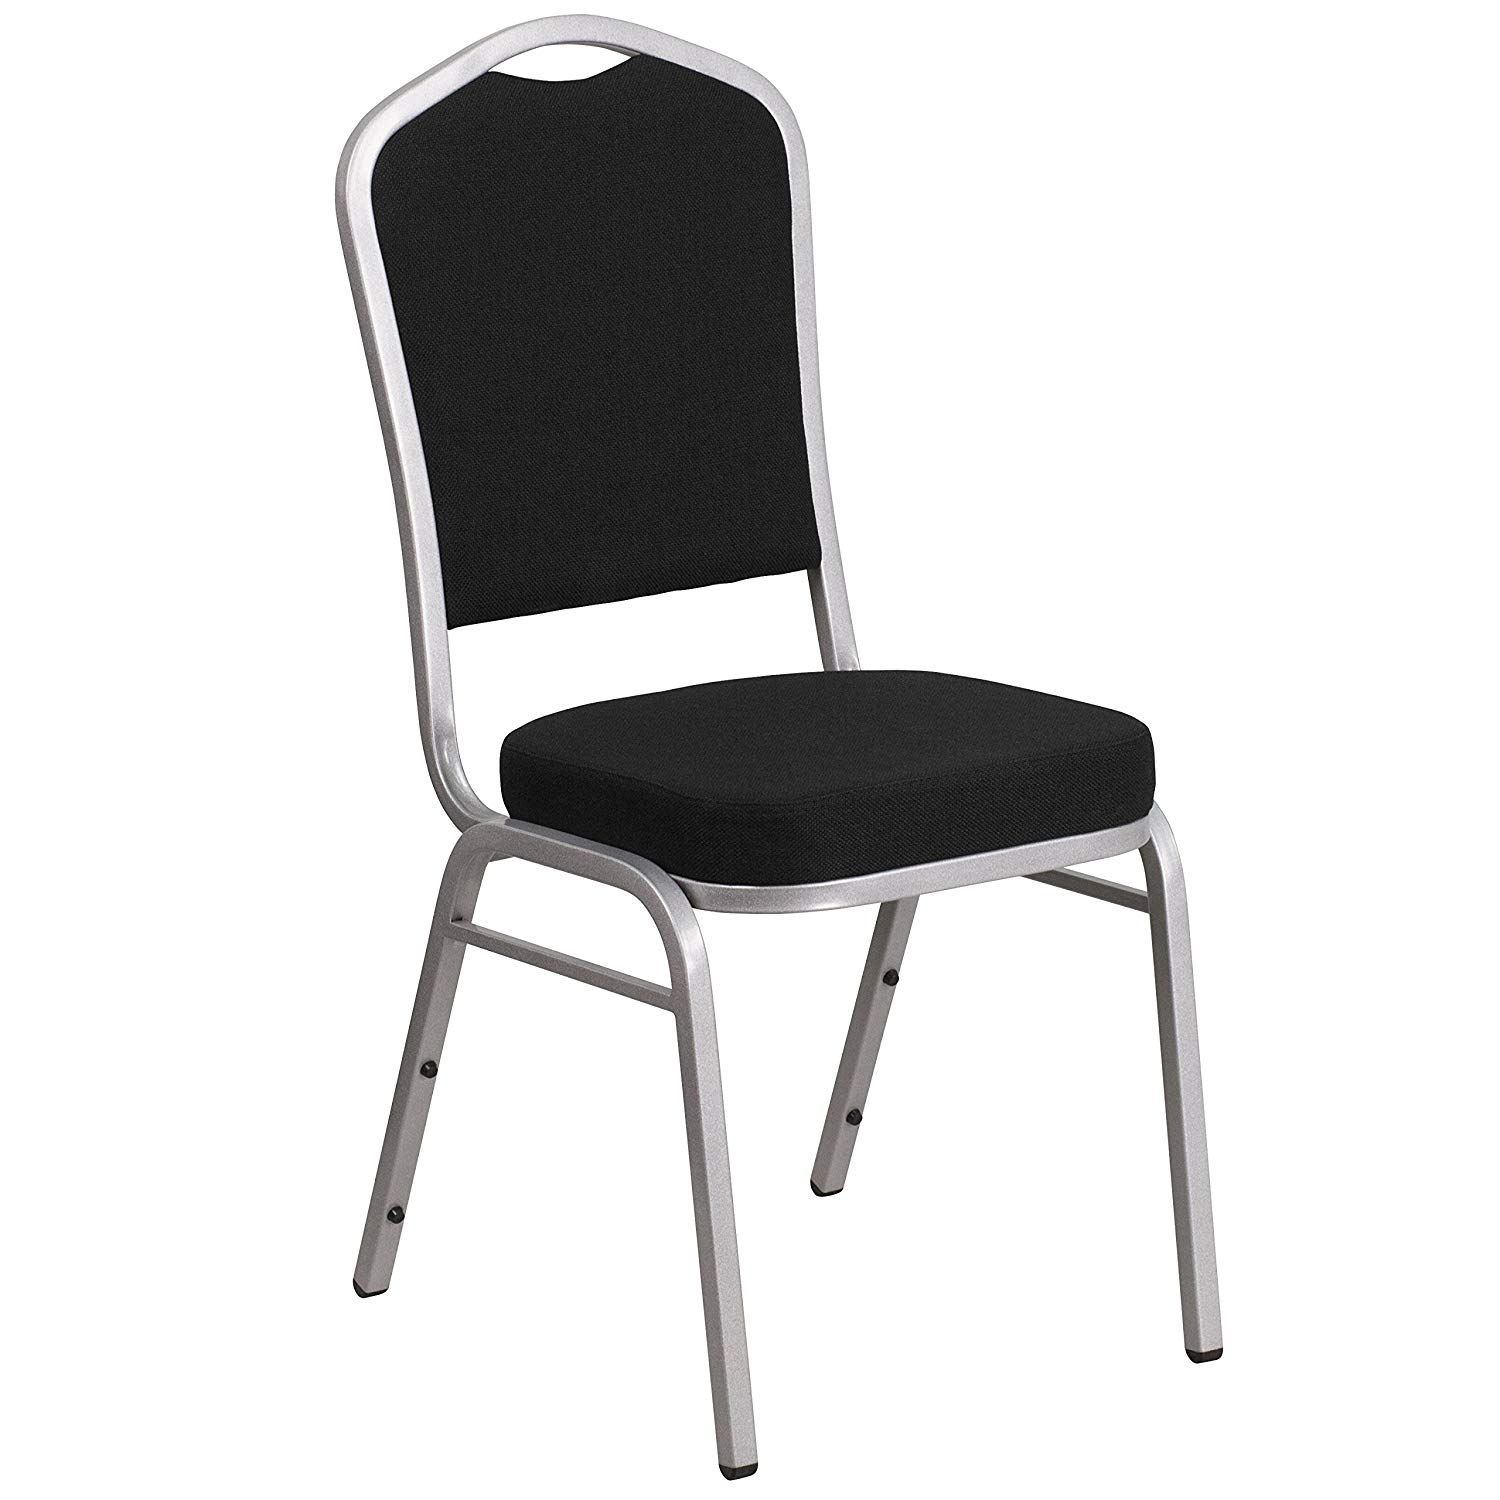 # 37- CROWN BACK BANQUET CHAIR WITH BLACK FABRIC